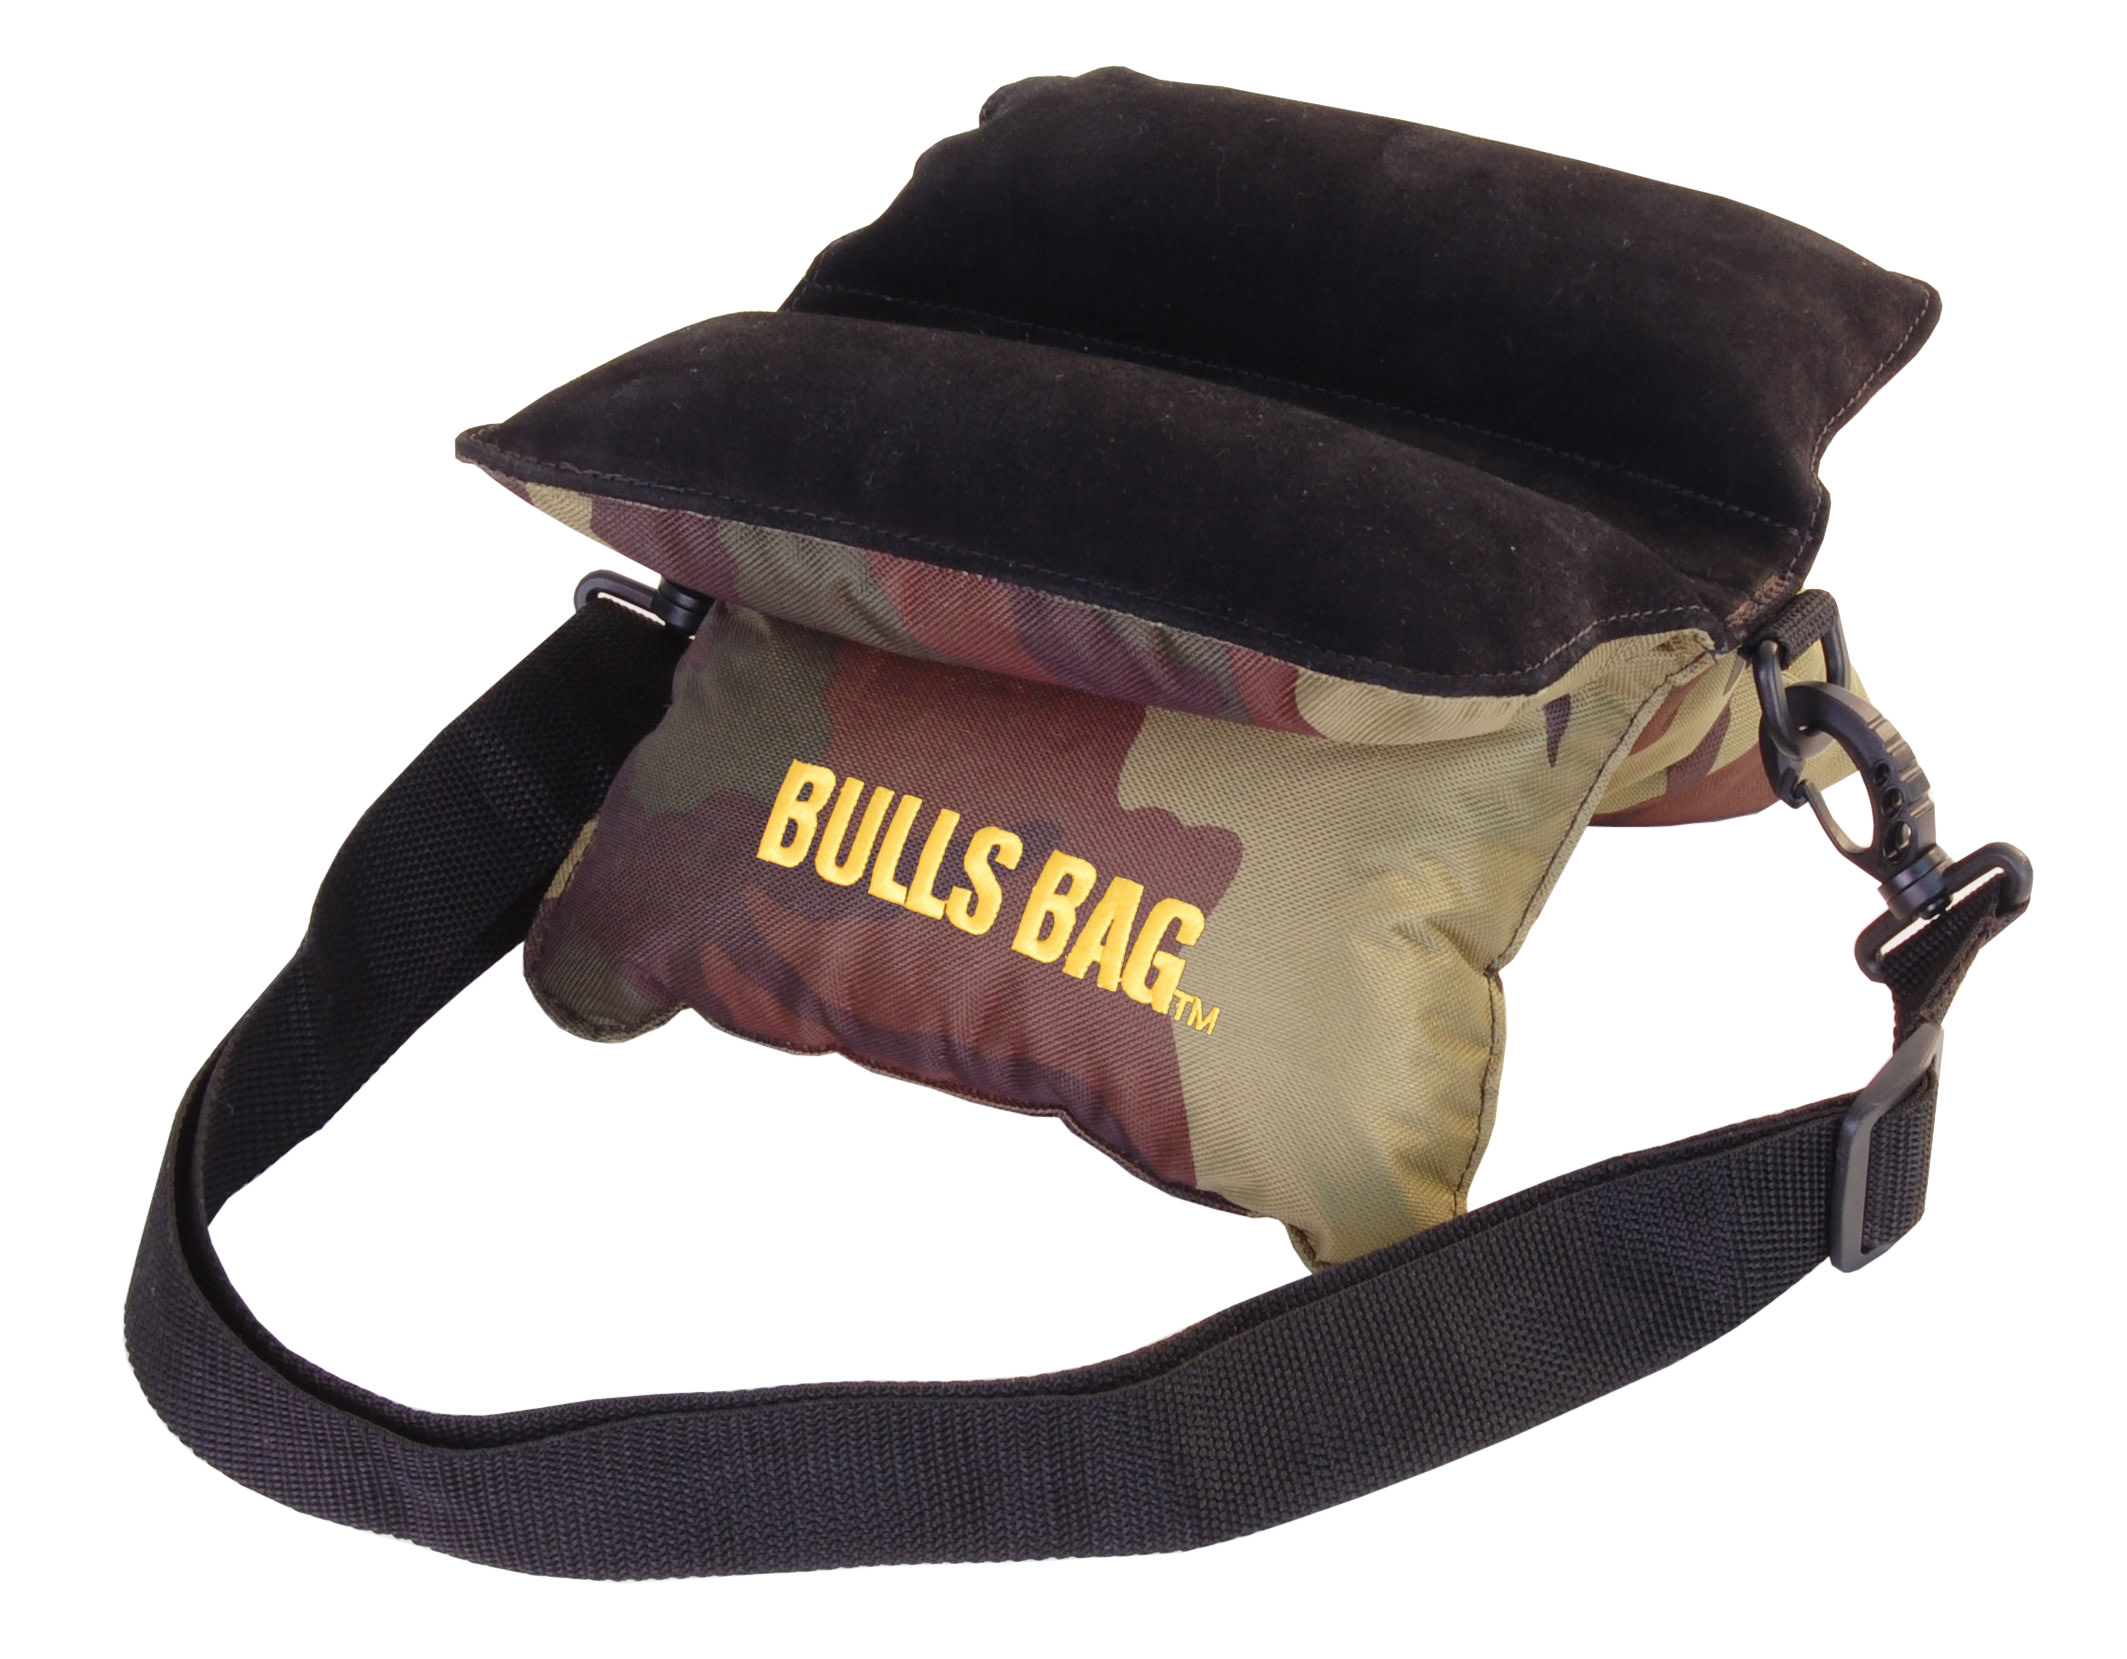 Bulls Bag Field Shooting Rest - 10